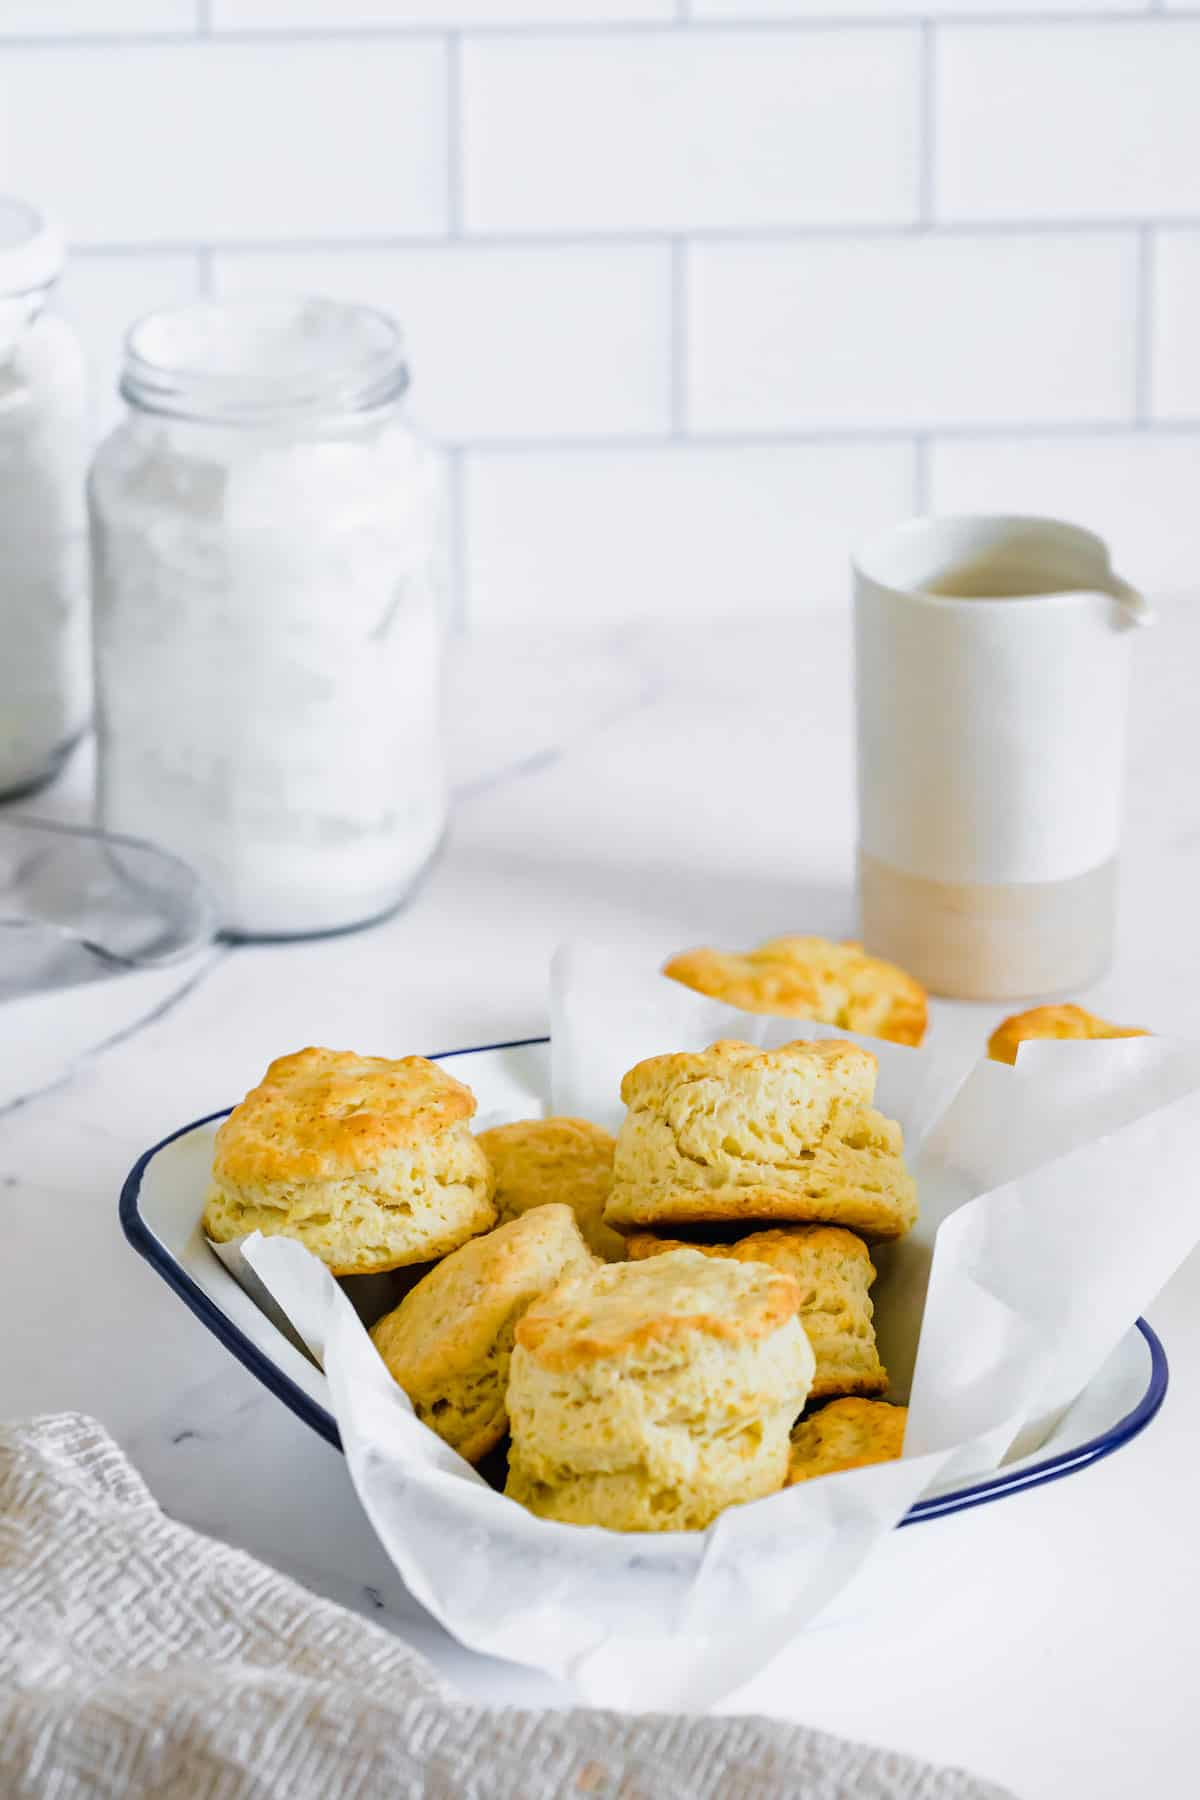 A Dish Full of Biscuits Next to a Cup of Milk and a Jar of Gluten-Free Flour